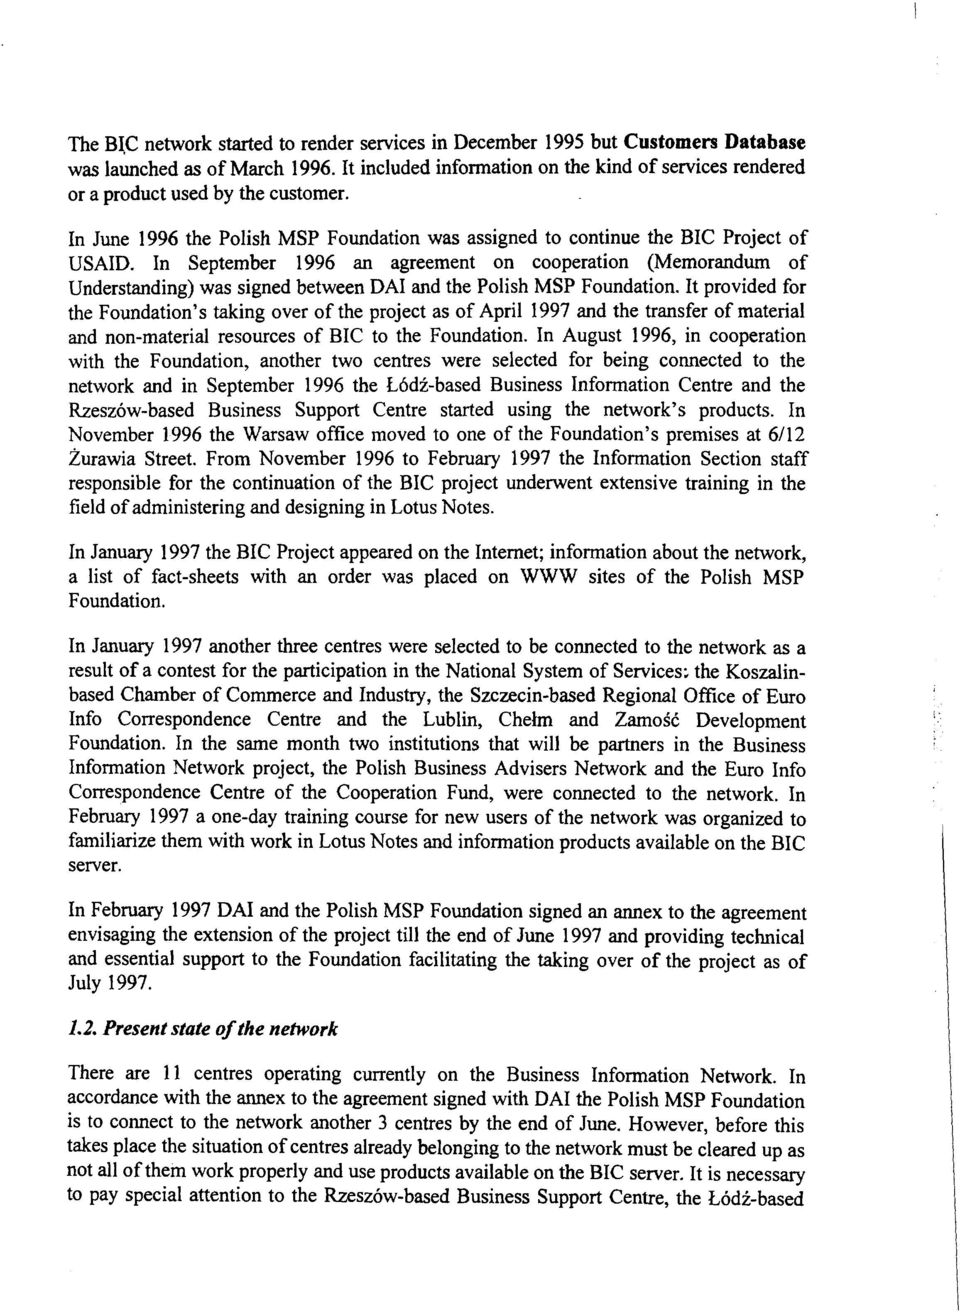 In September 1996 an agreement on cooperation (Memorandum of Understanding) was signed between DAI and the Polish MSP Foundation.